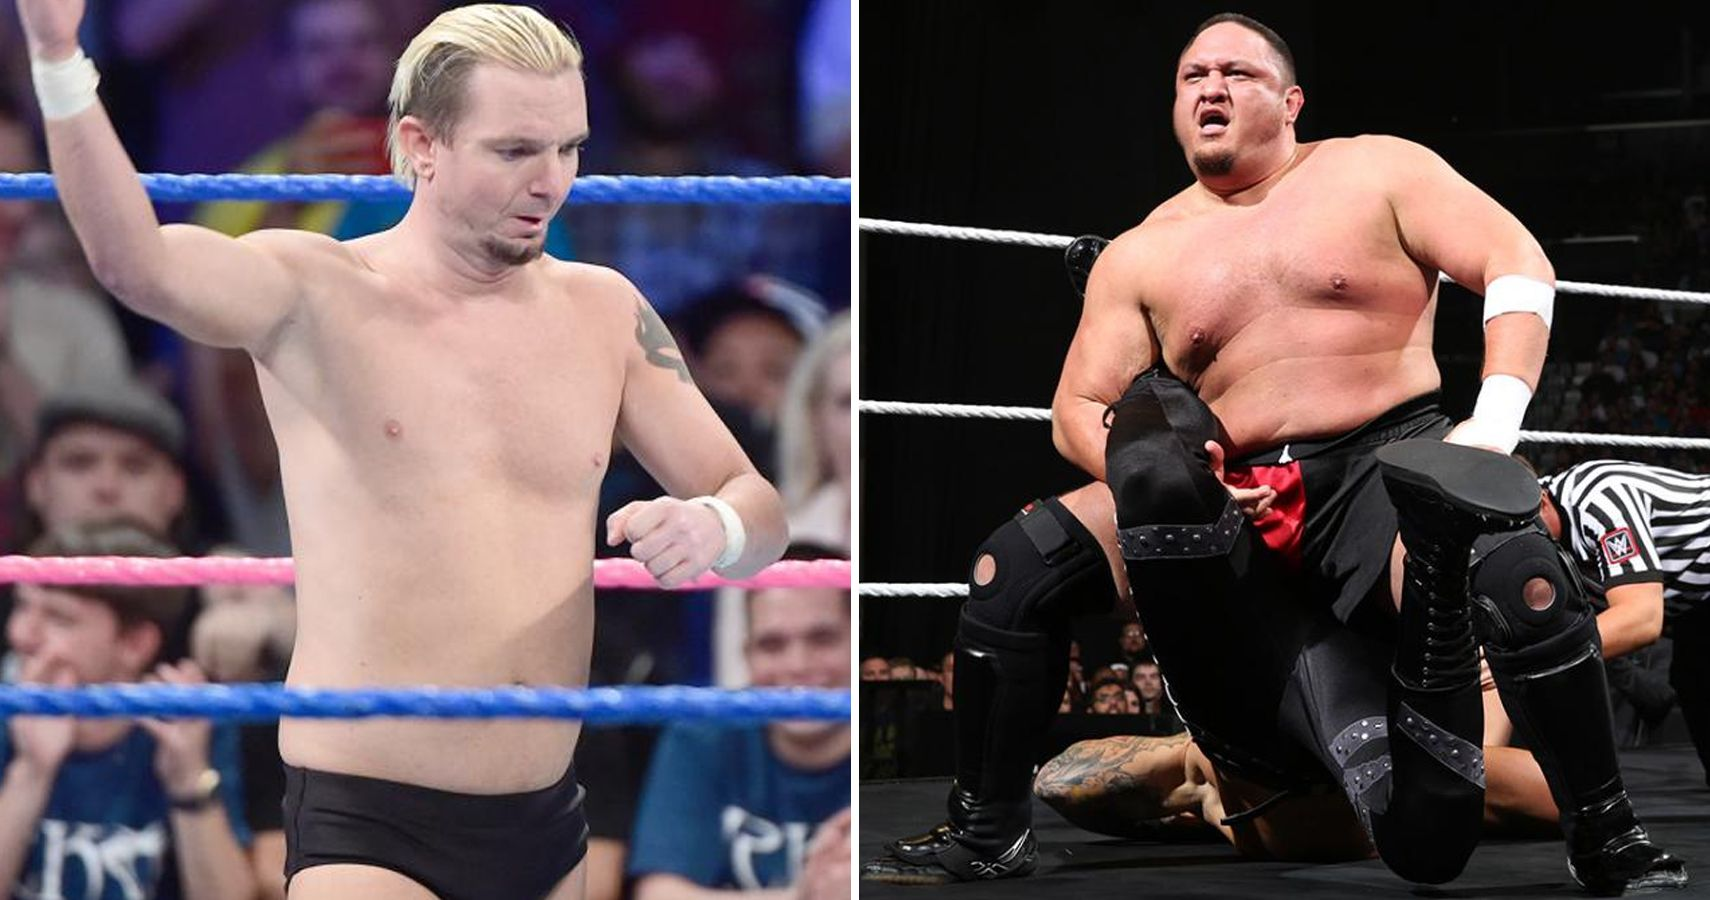 15 Current WWE Superstars With The Worst Physiques